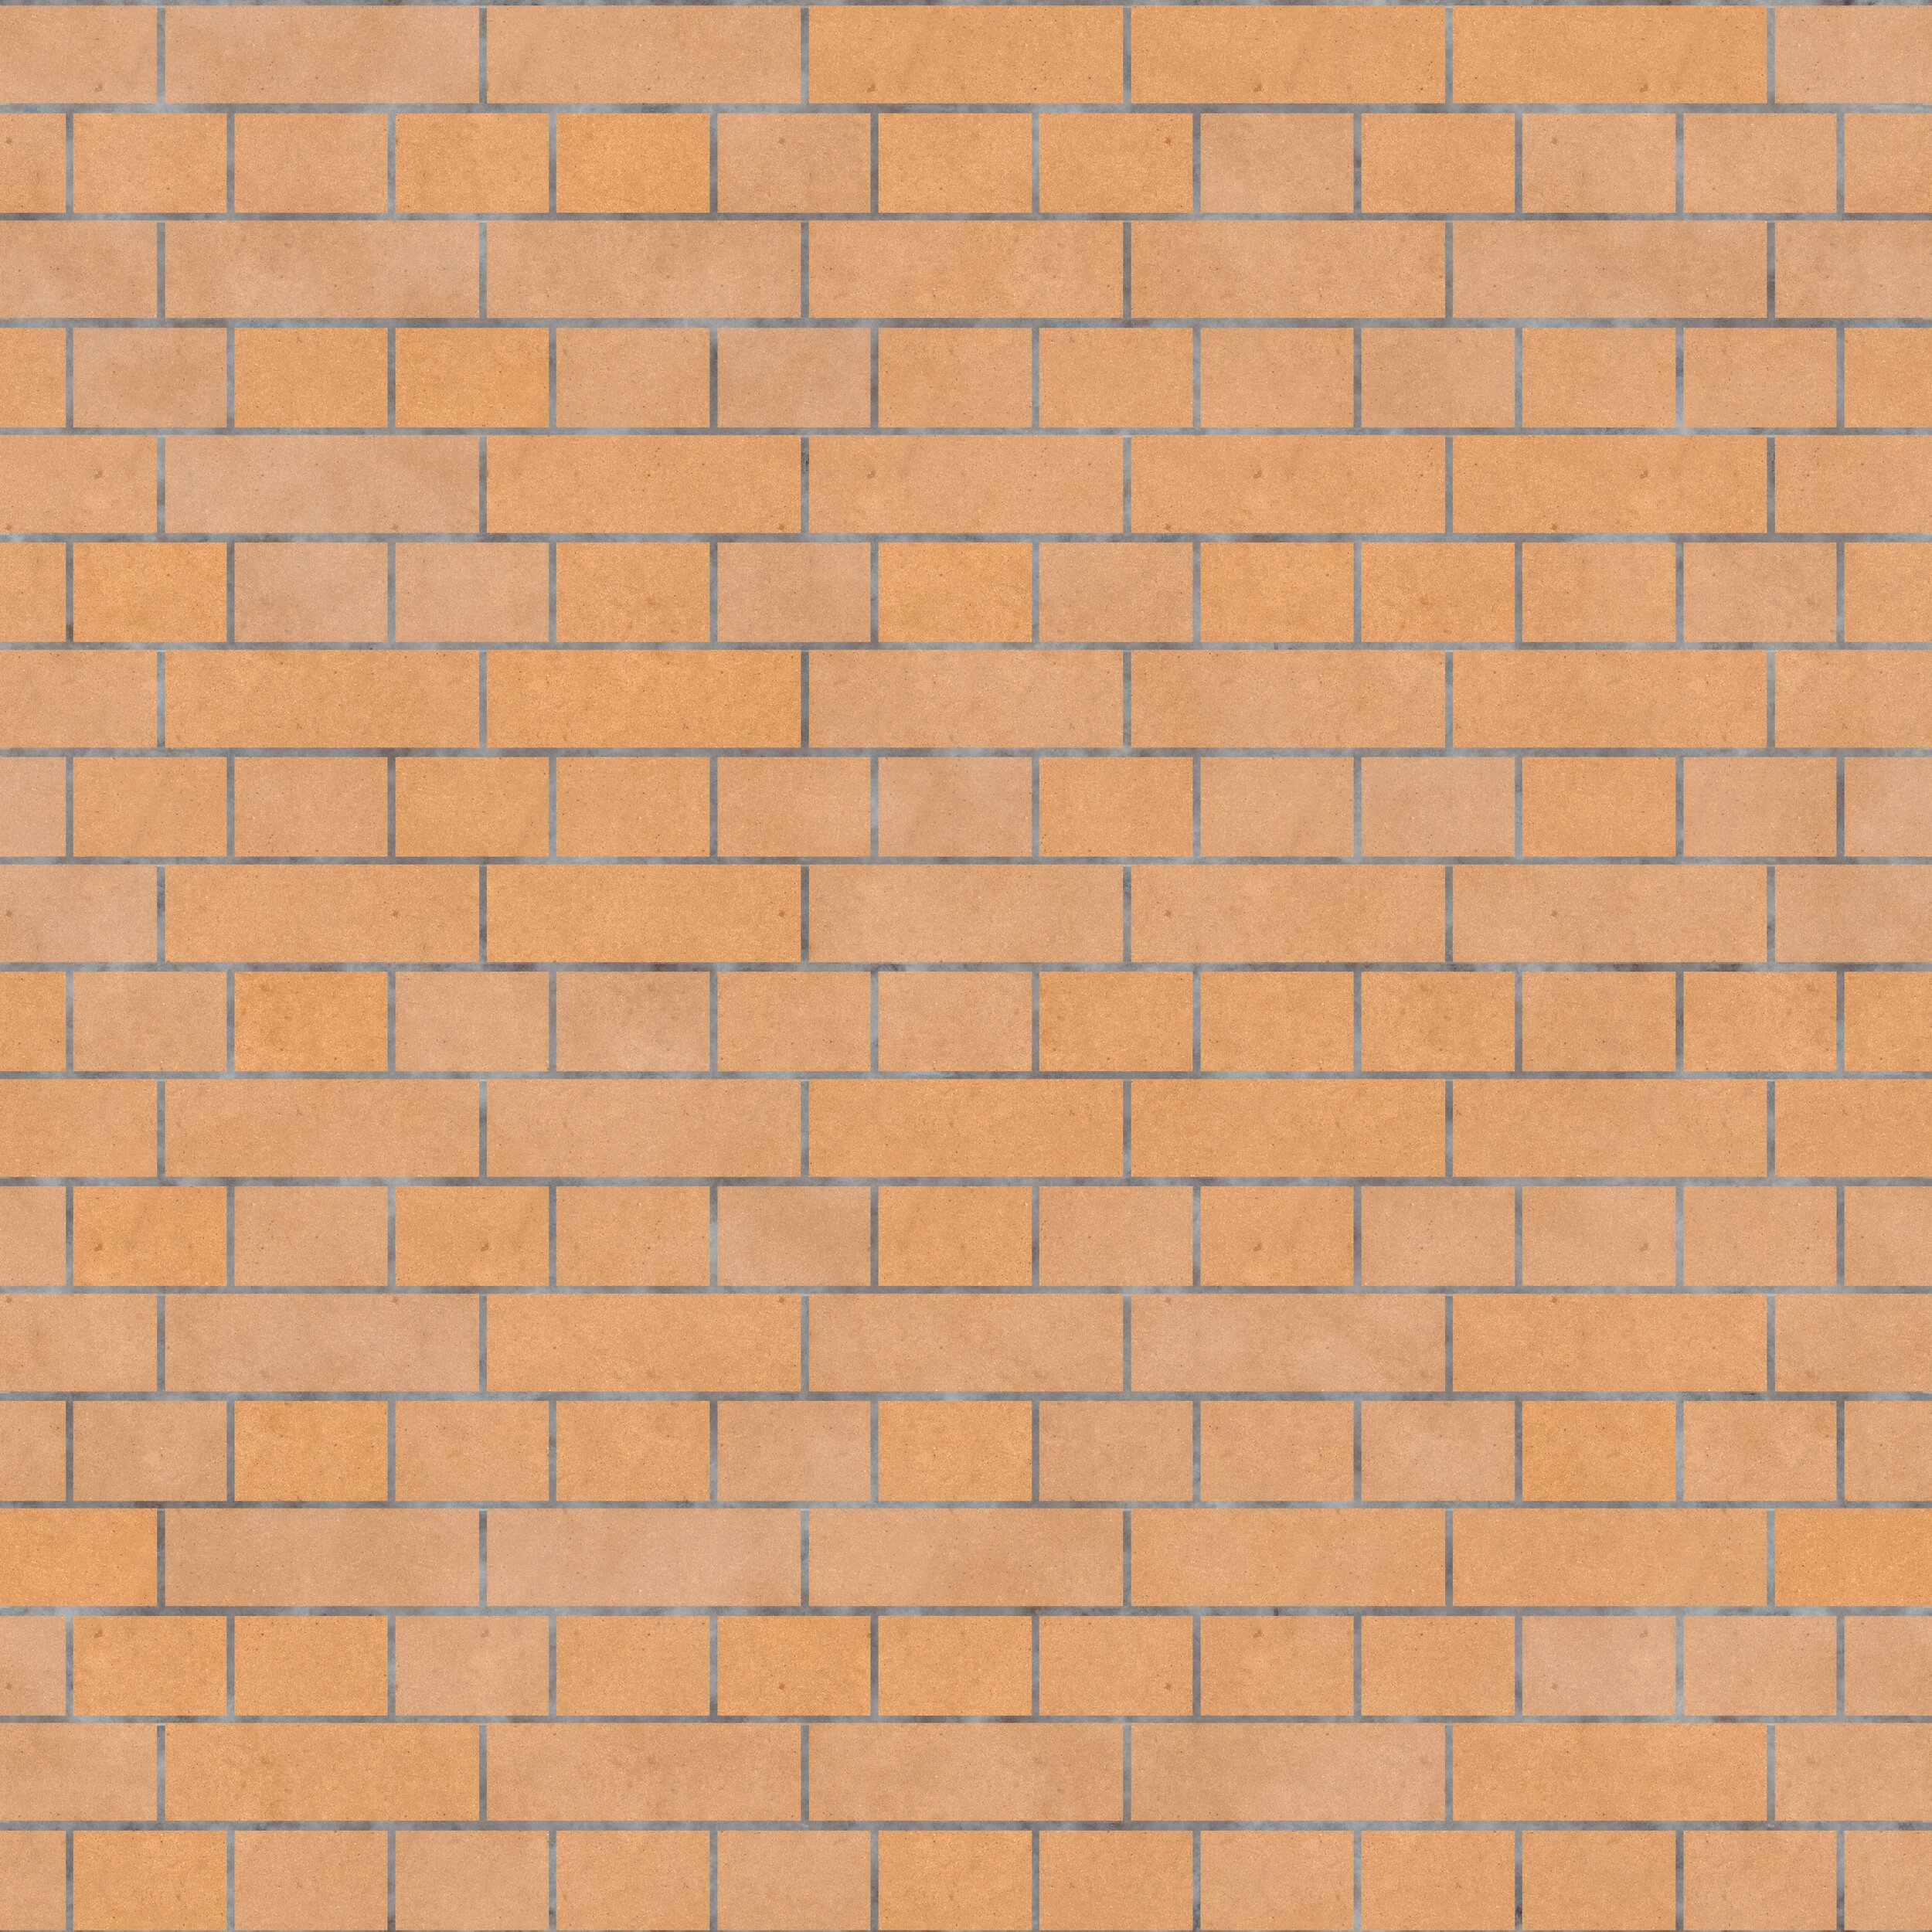 Bricks_AI_01C_Buff_COLOR.jpg